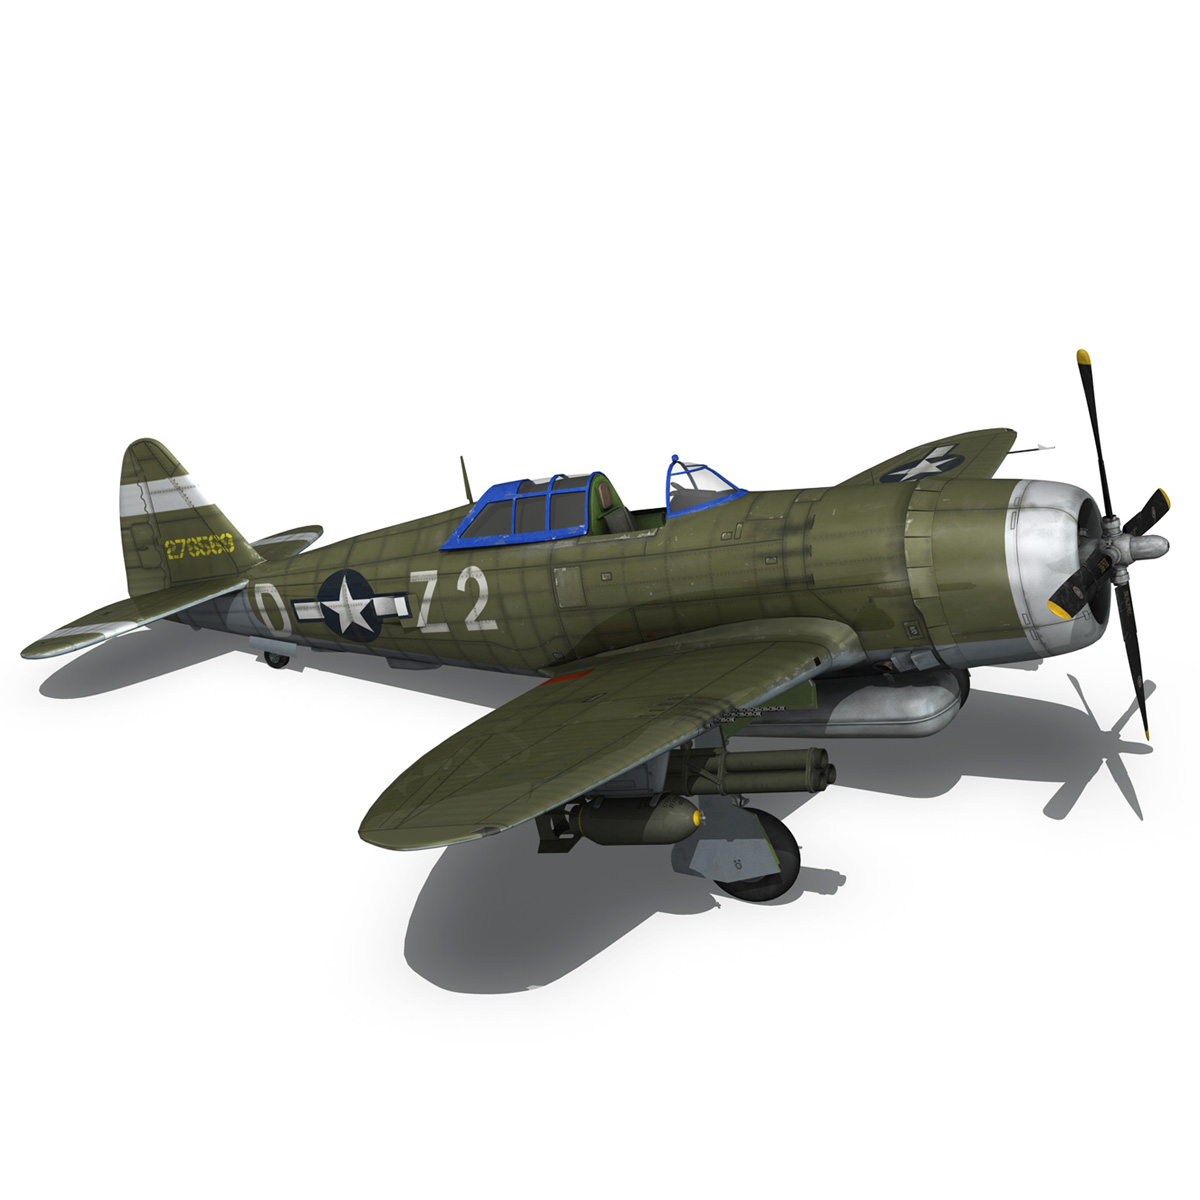 republic p-47d thunderbolt – raid hot mama 3d model 3ds c4d lwo obj 264324